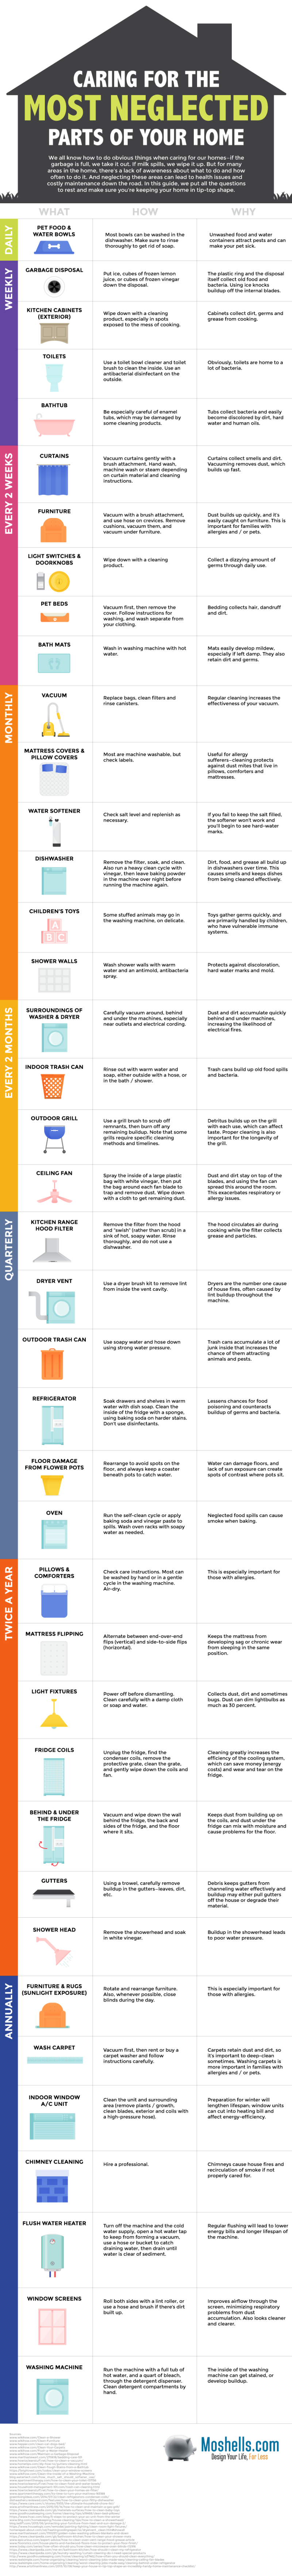 Do You Actually Take Good Care Of Your Home - Infographic